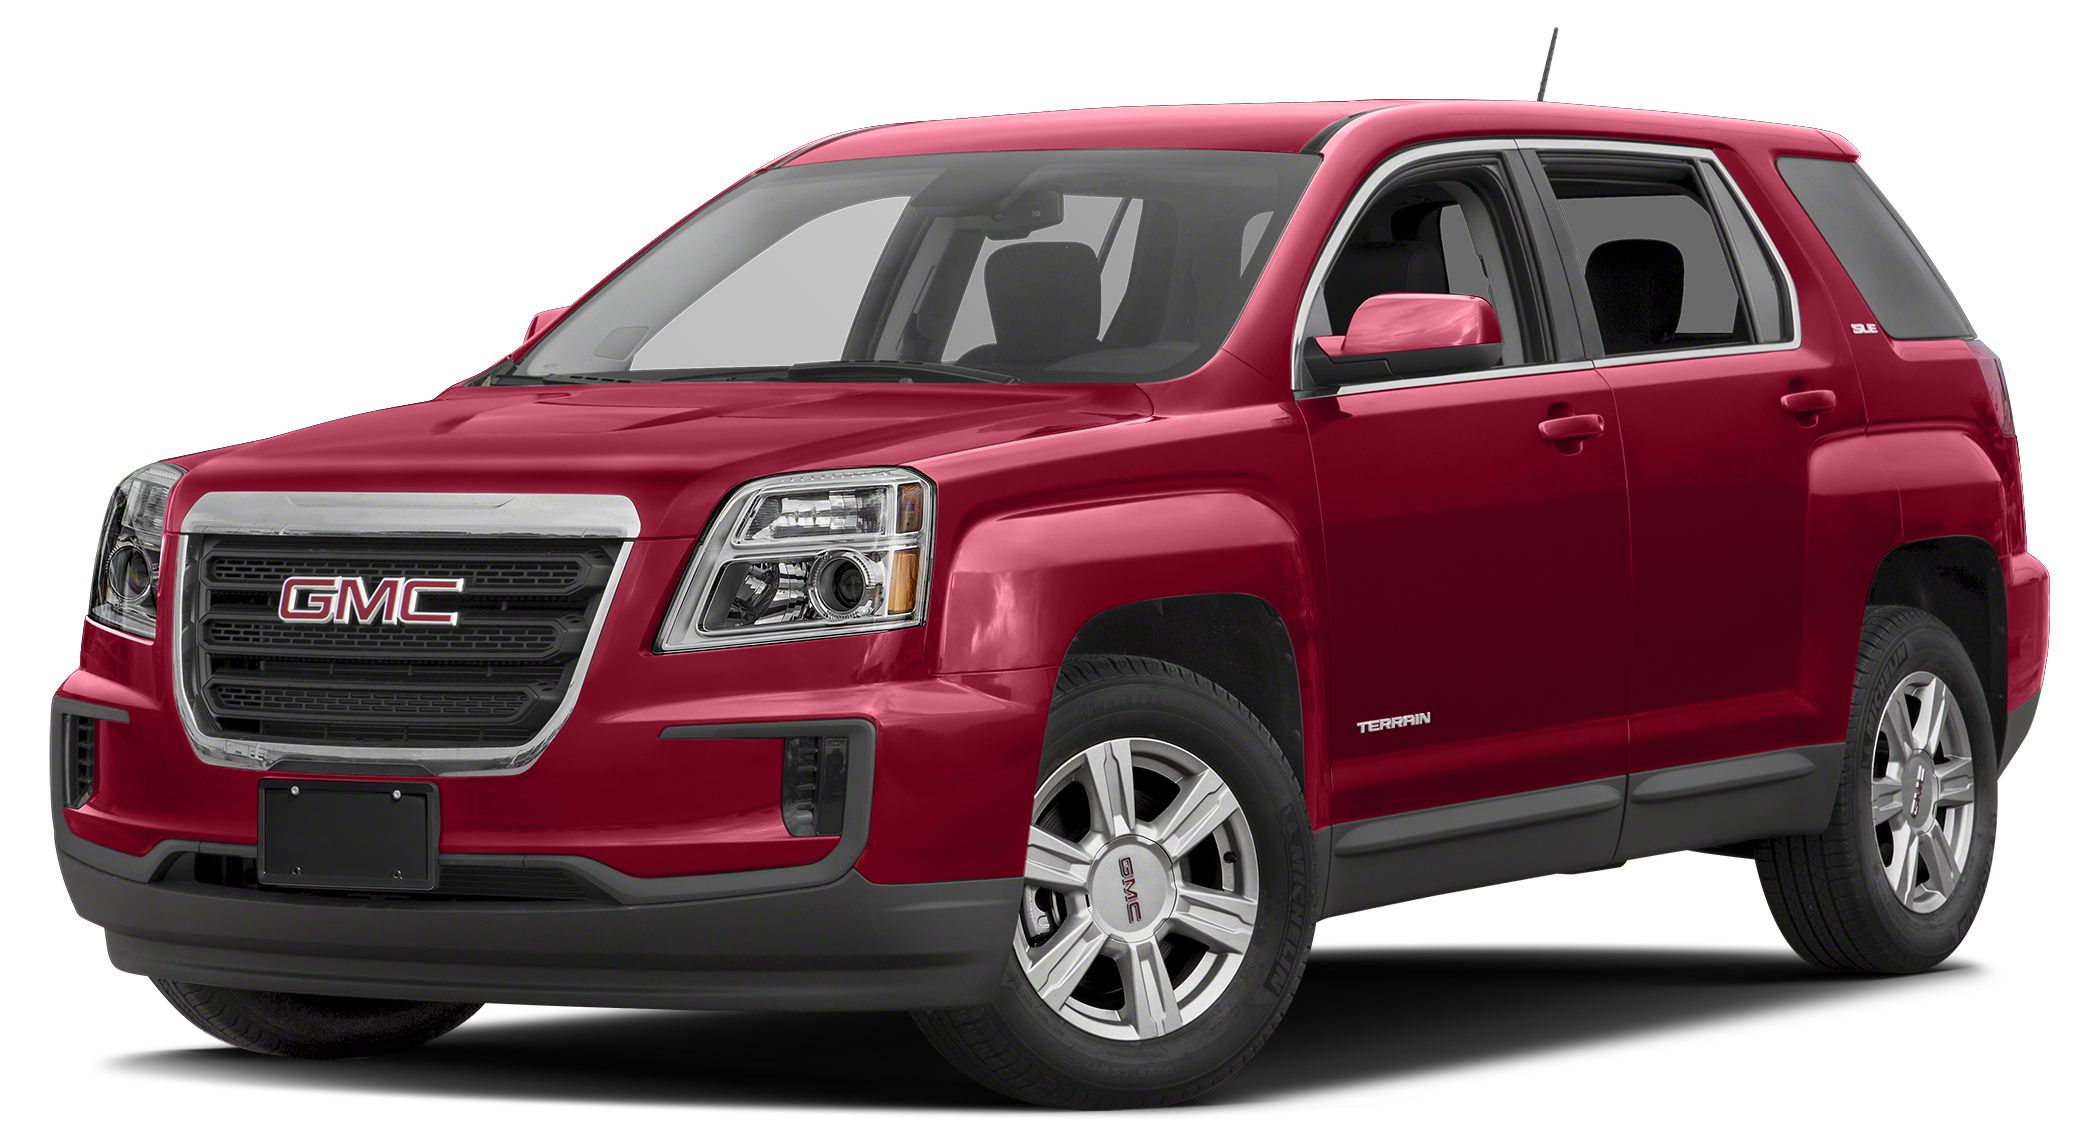 2016 GMC Terrain SLE-1 SLE trim EPA 32 MPG Hwy22 MPG City Alloy Wheels Satellite Radio iPodM